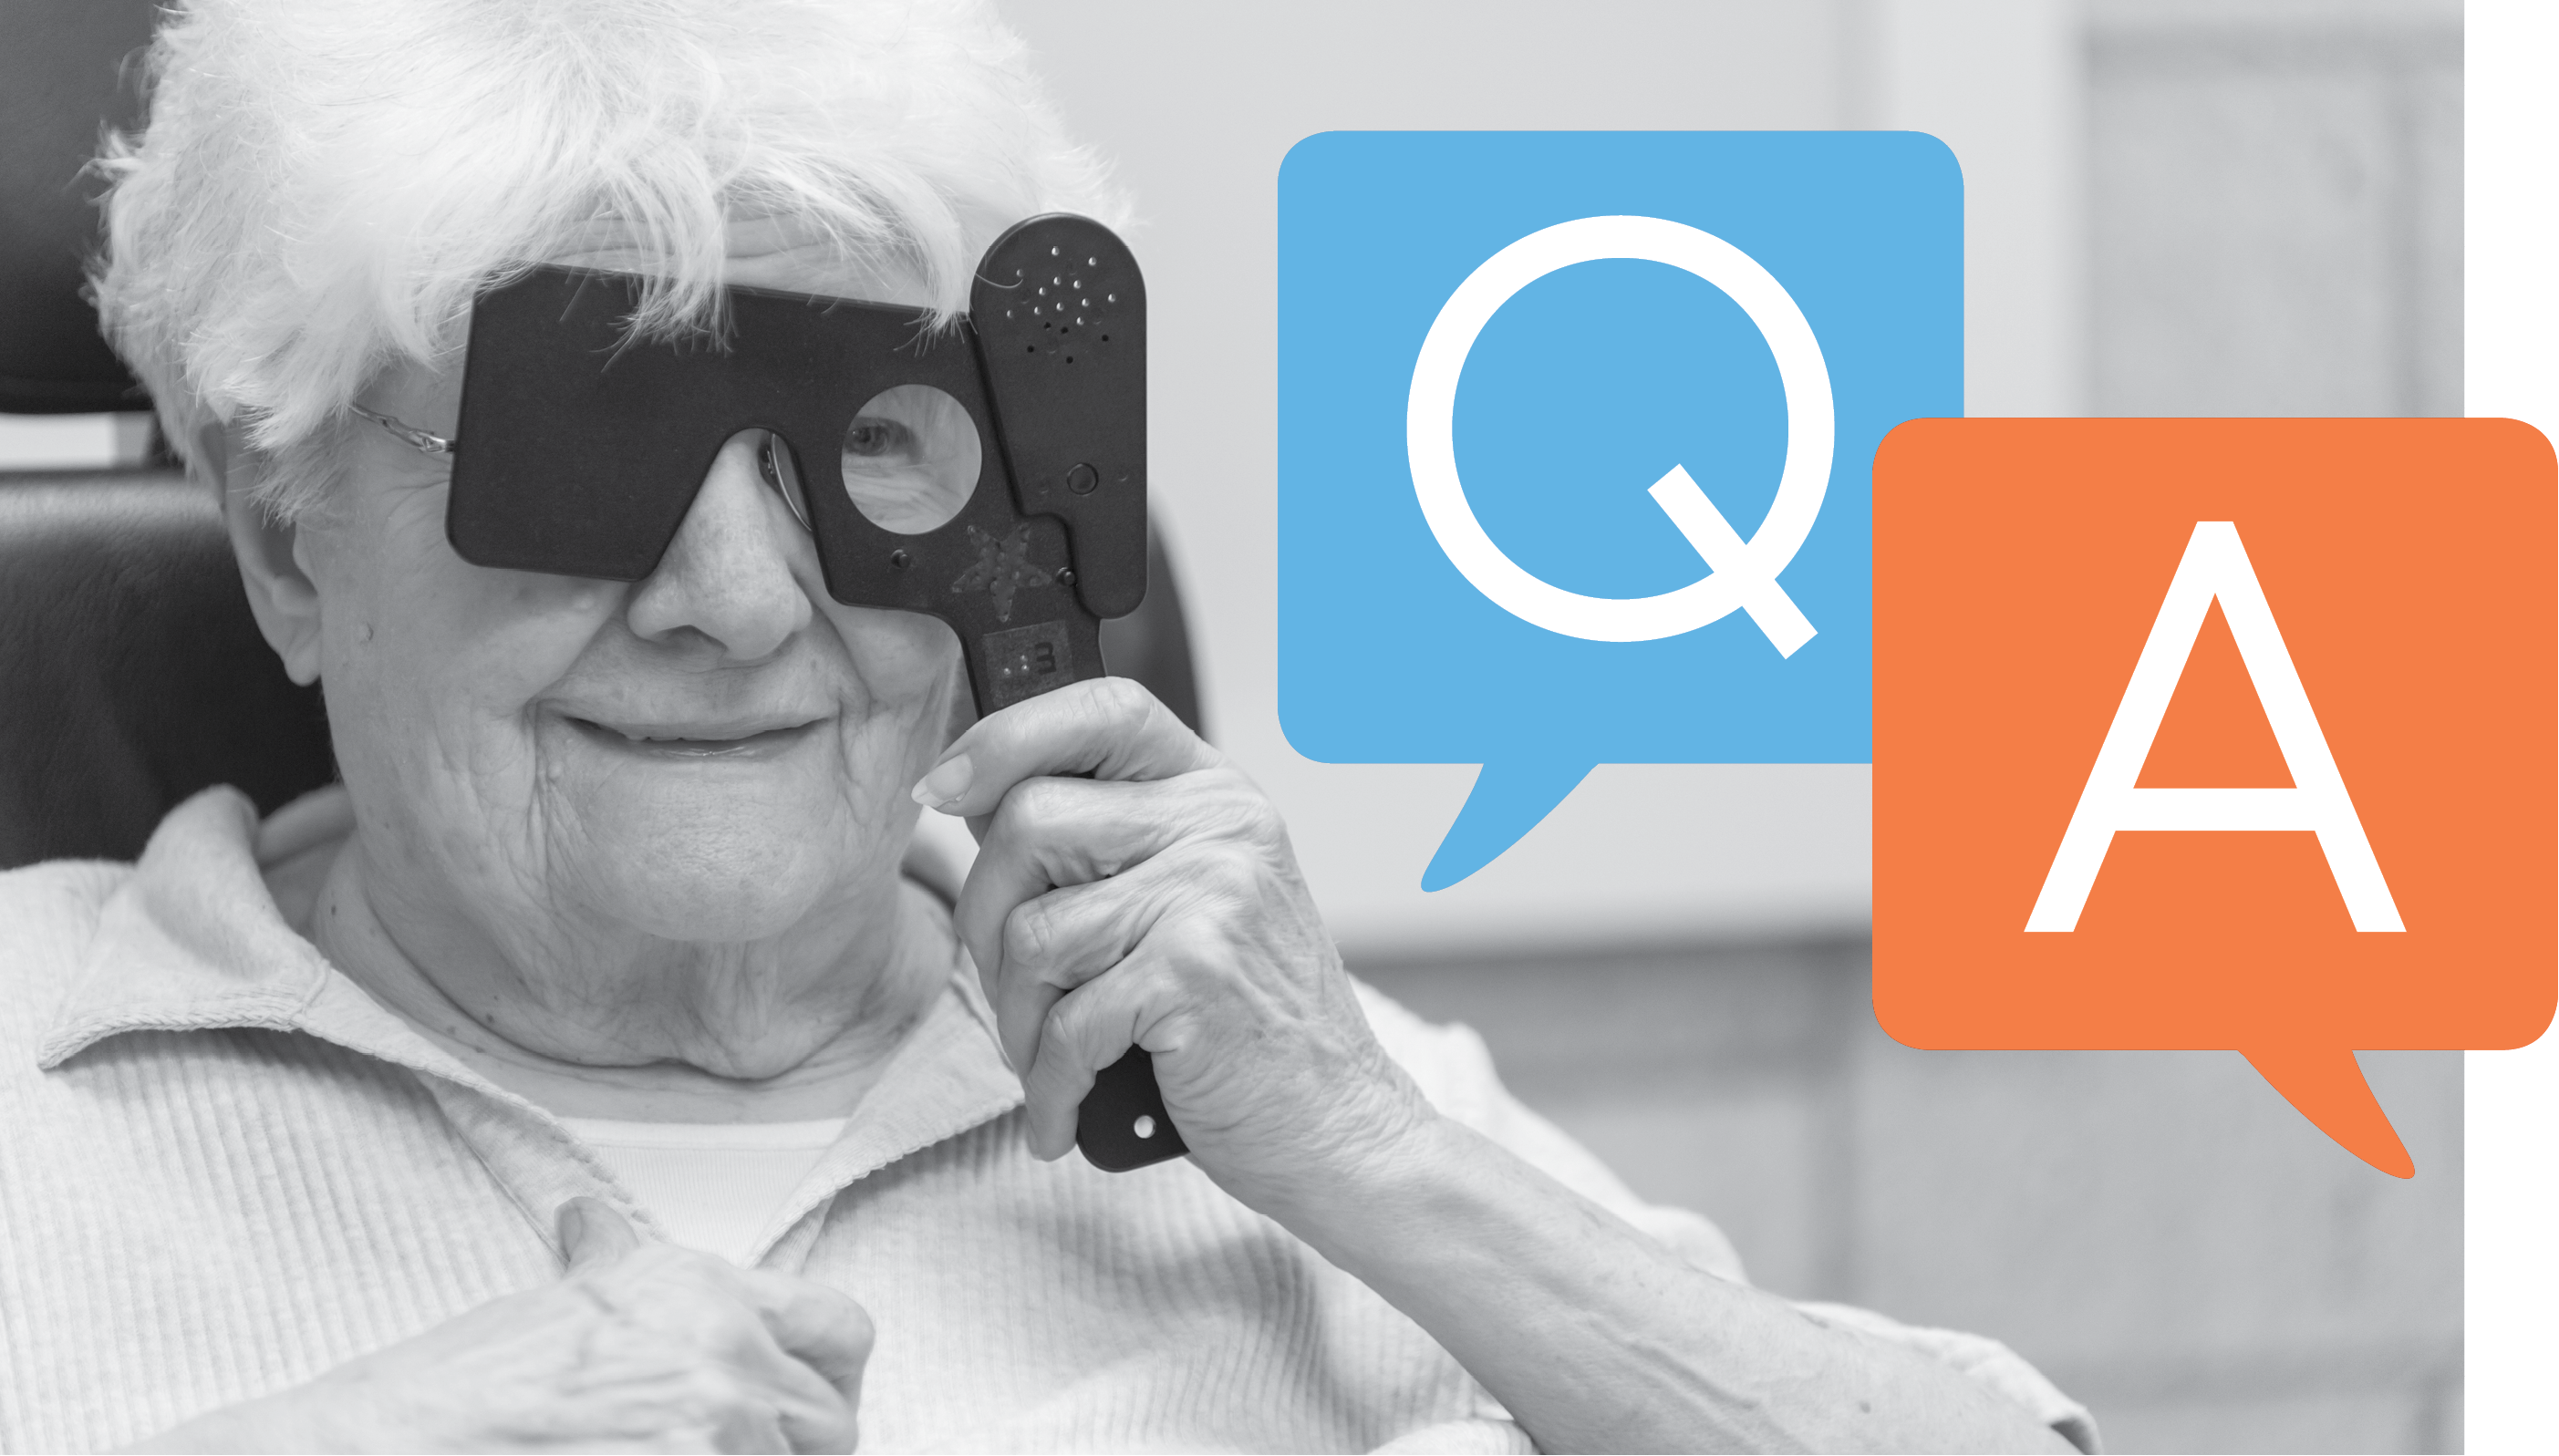 Low vision patient in an exam. Q&A over picture in speech bubbles